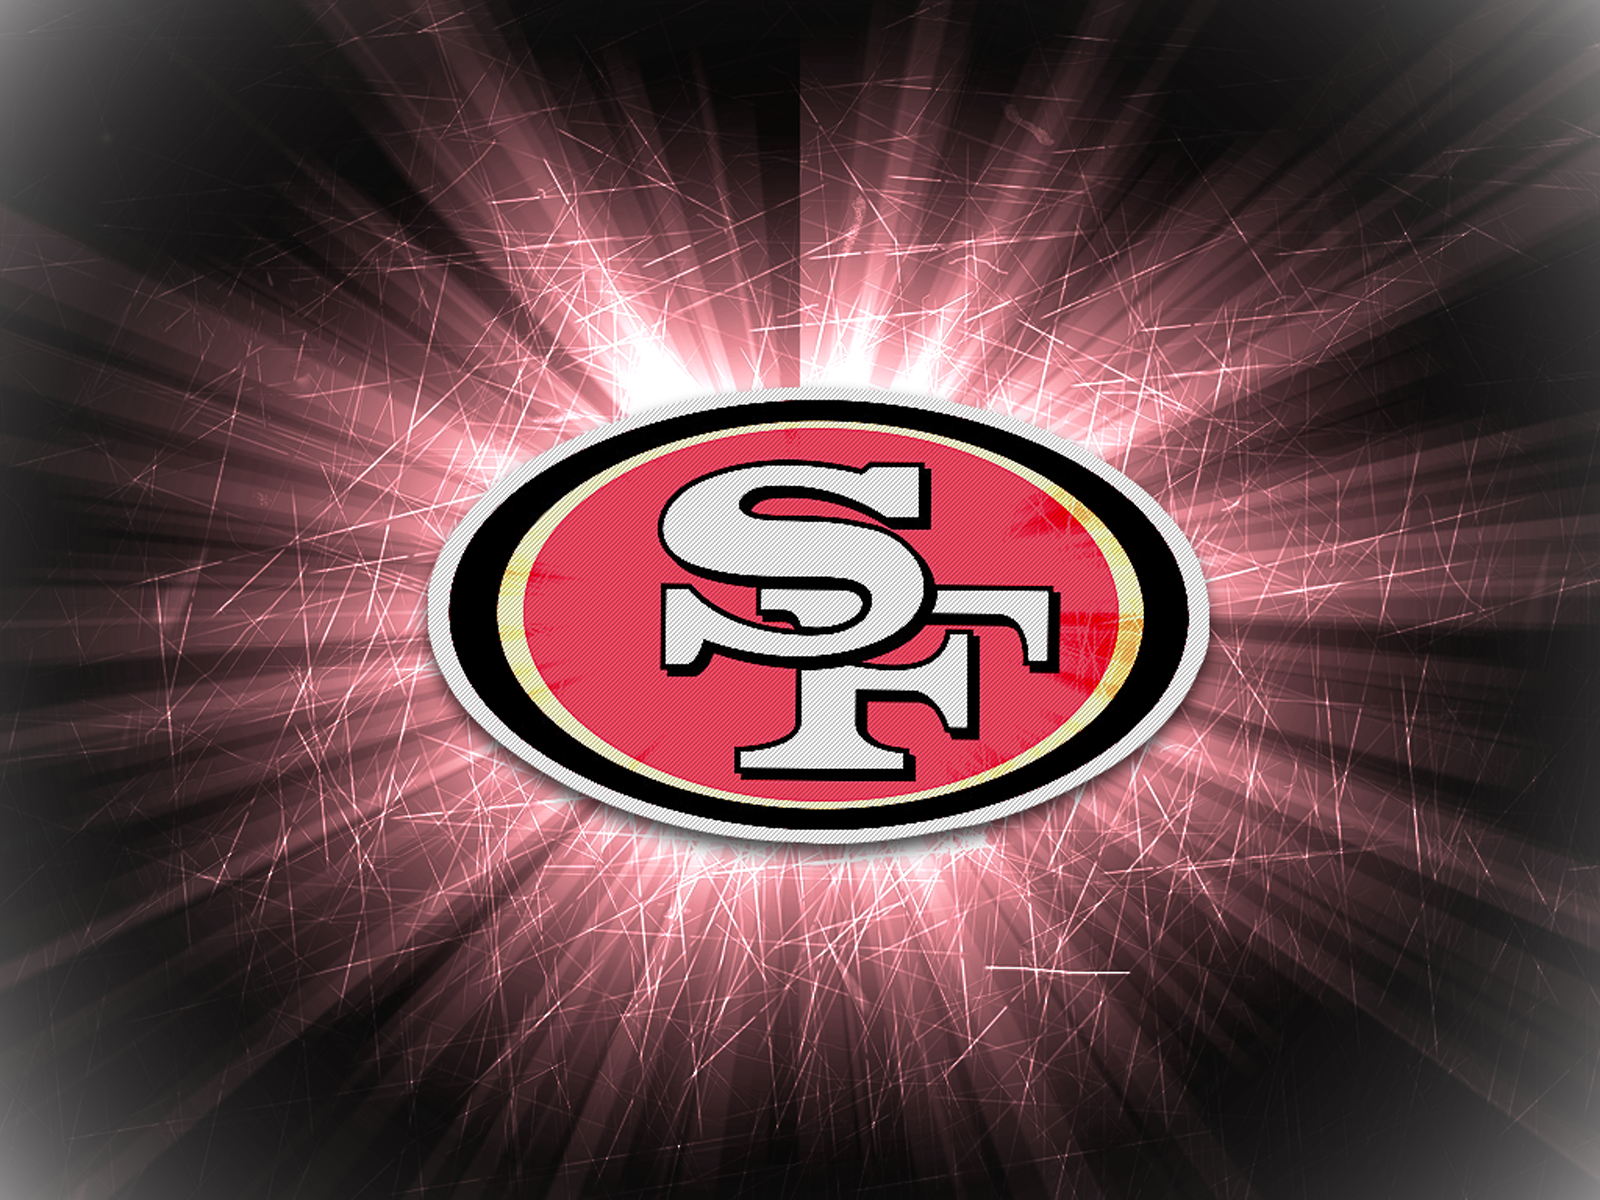 Francisco 49ers desktop background San Francisco 49ers wallpapers 1600x1200